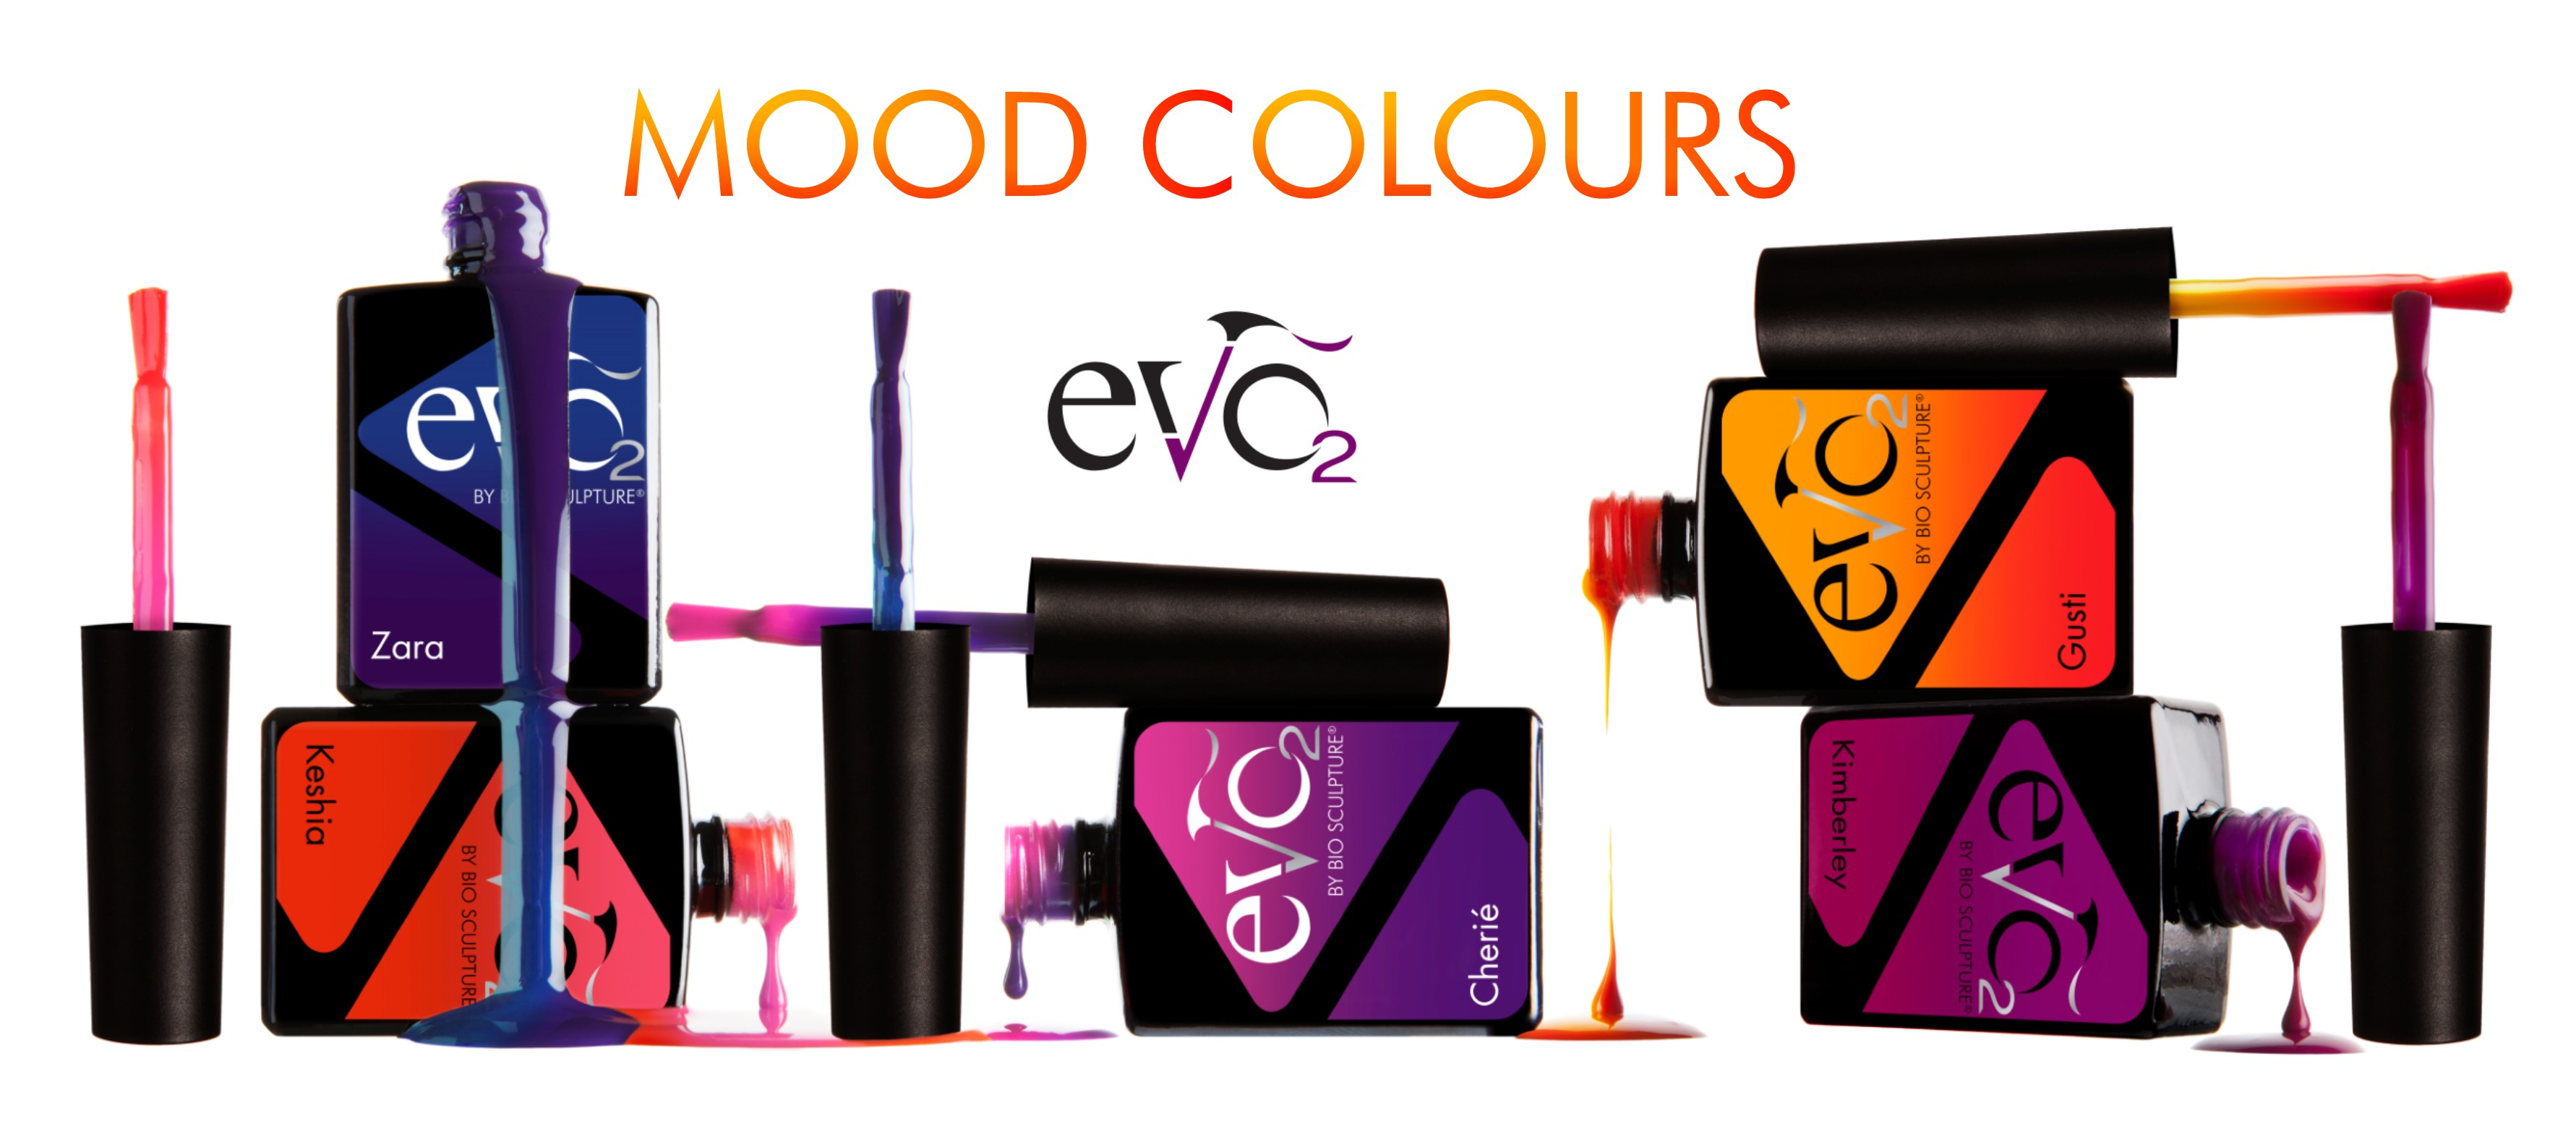 Evo-Mood-Colours